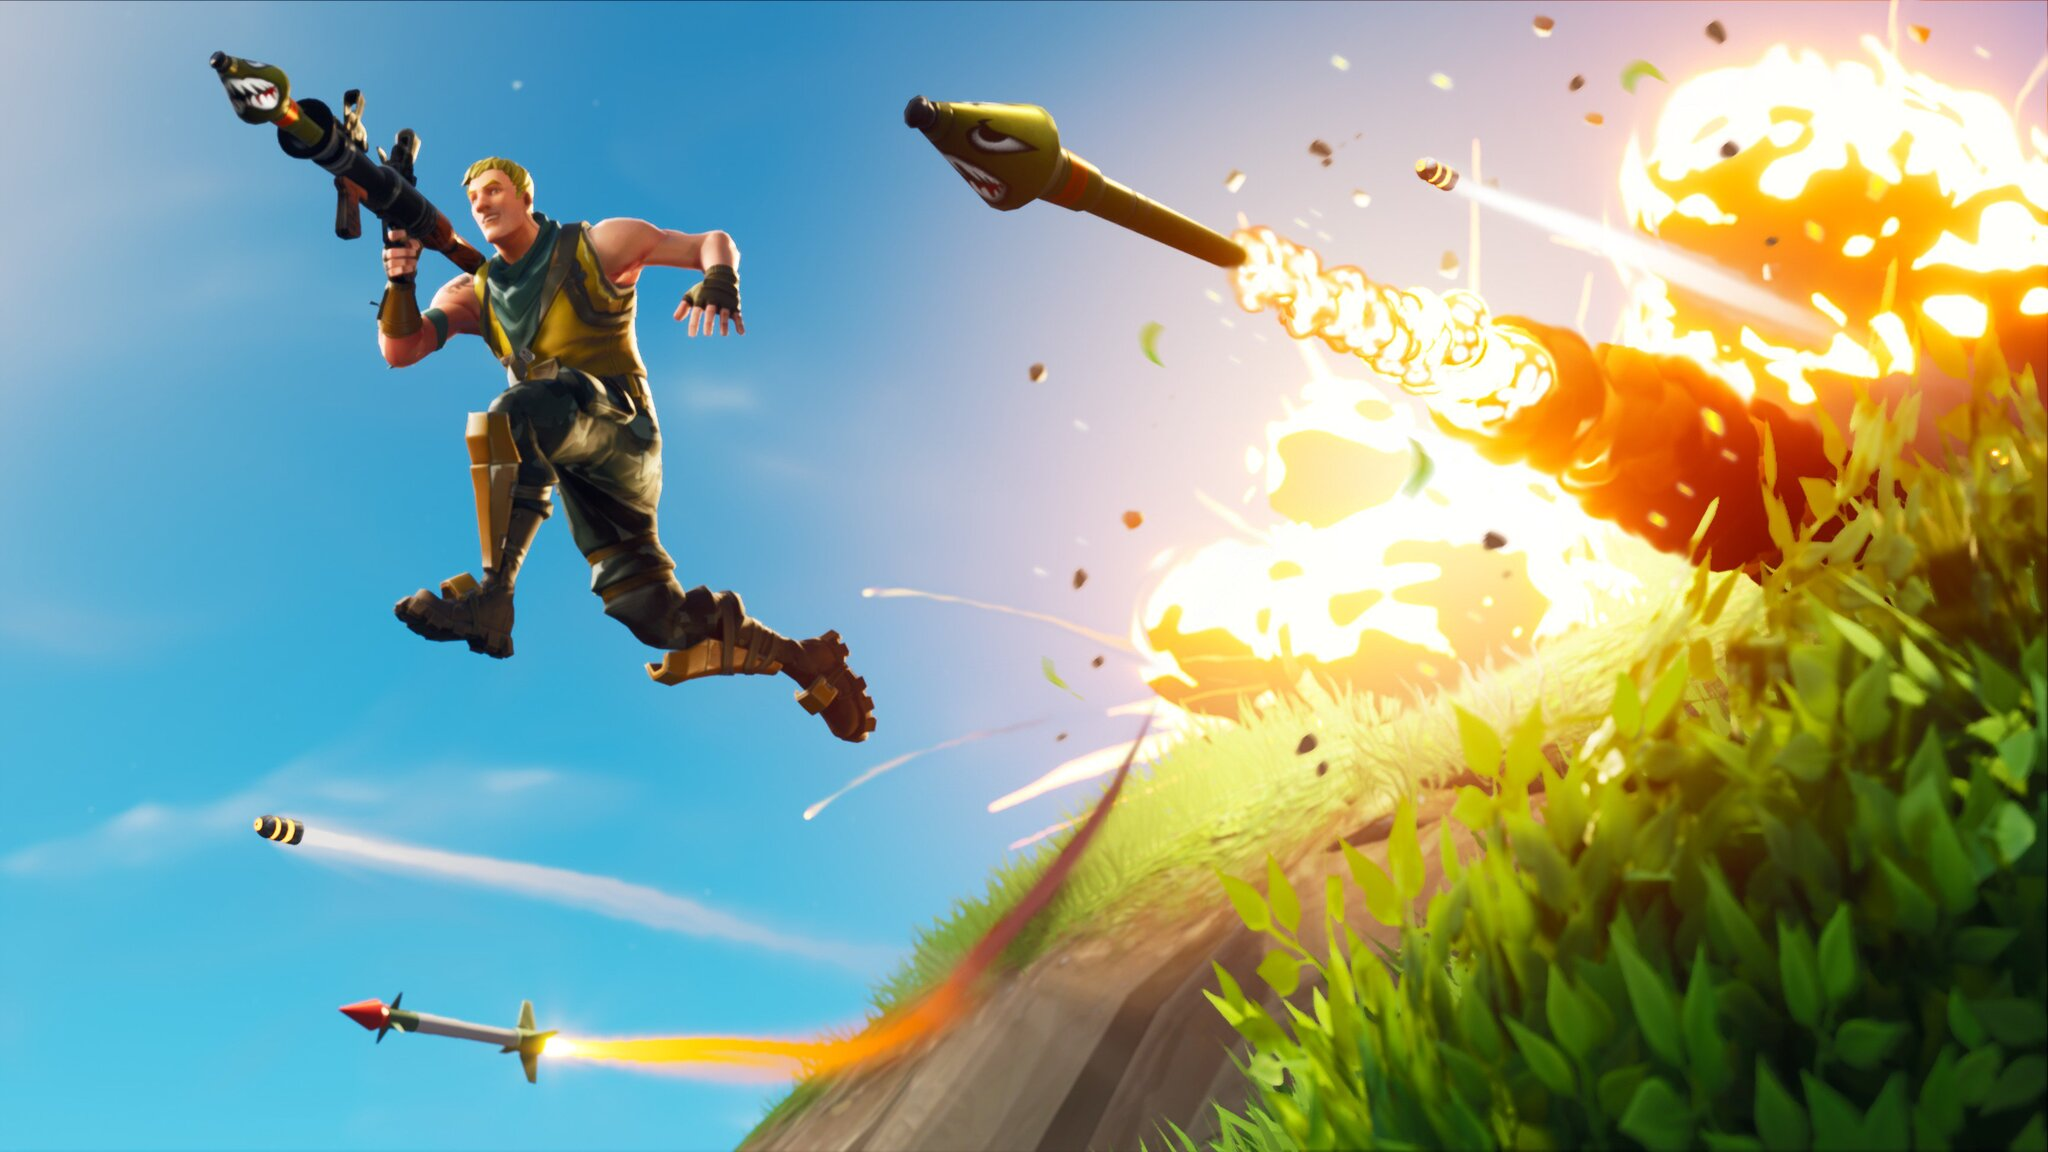 2048x1152 Fortnite 2018 2048x1152 Resolution HD 4k